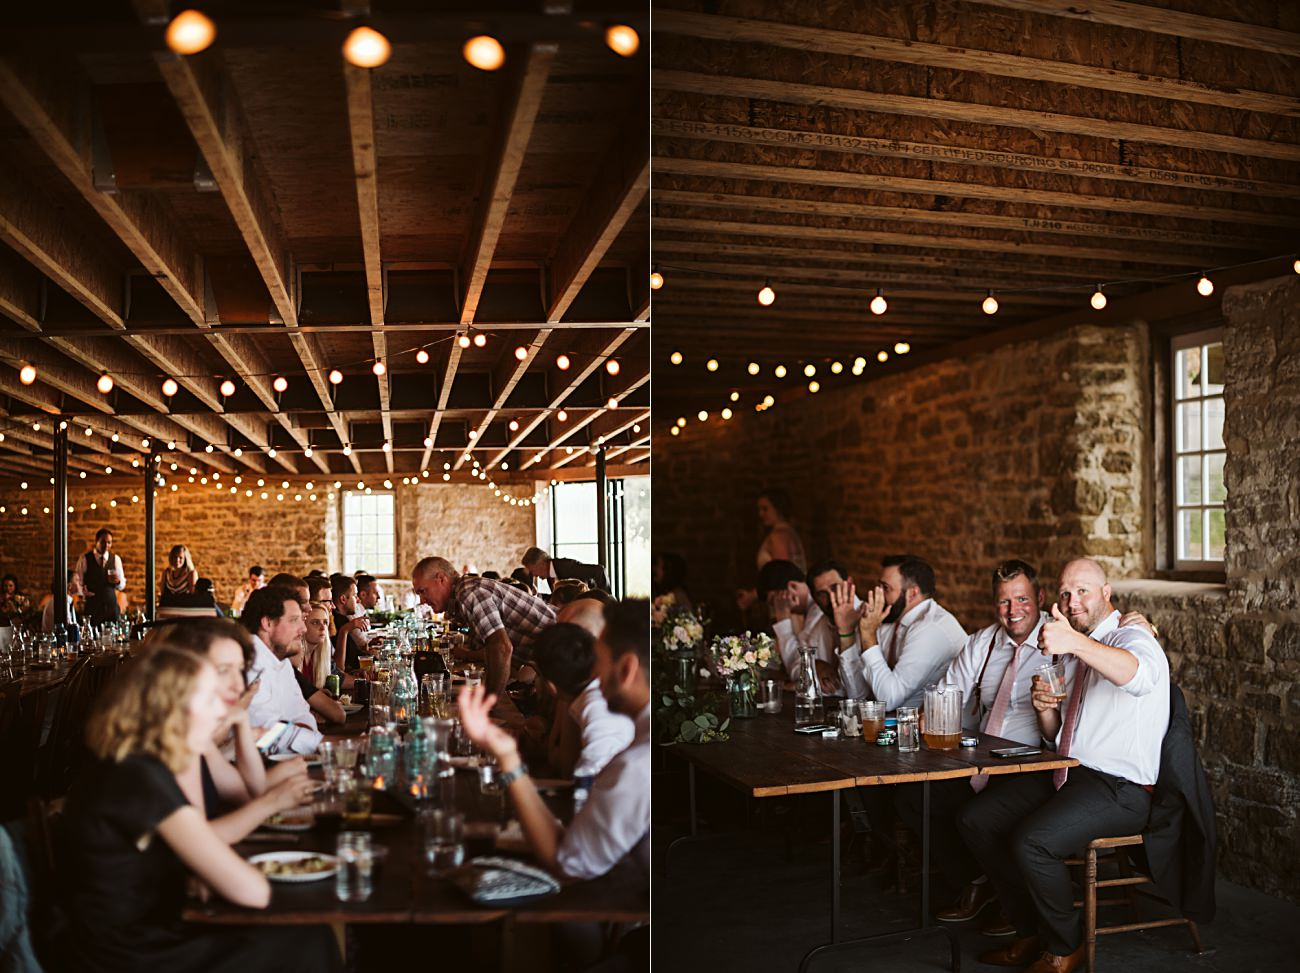 Octagon Barn Wedding near Spring Green Wisconsin, Barn Wedding Inspiration, Madison Wisconsin Photographer, Natural Intuition Photography, Reception Photos